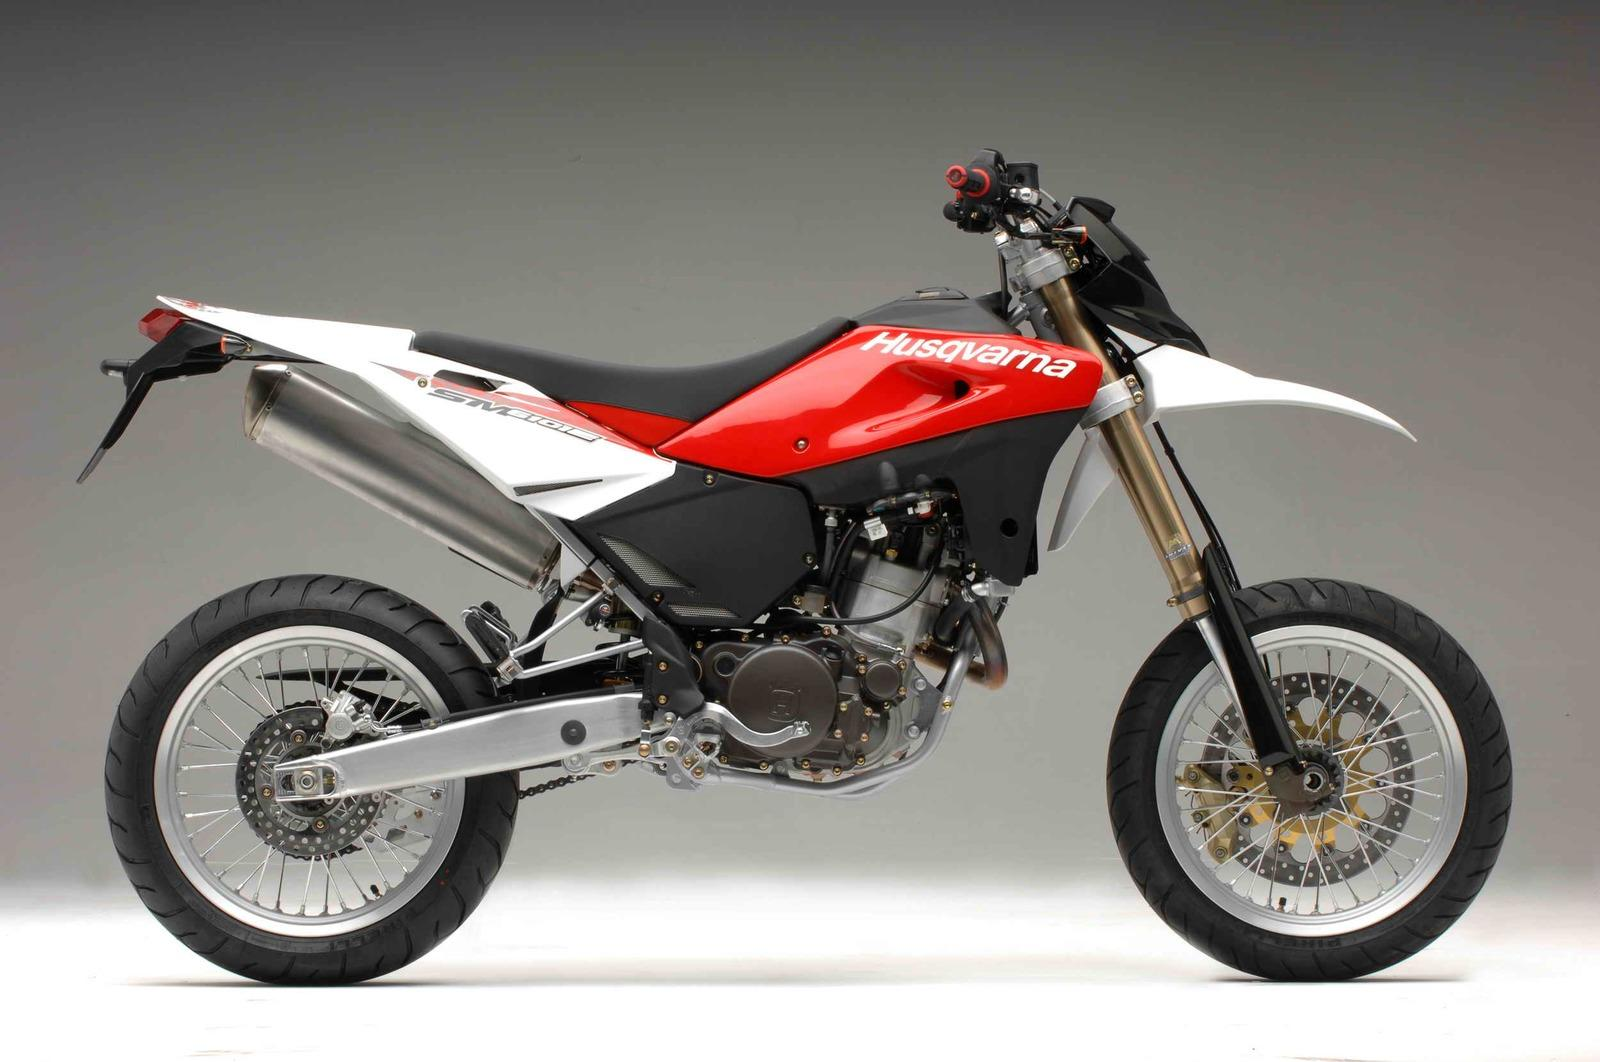 2007 Husqvarna SM 610 IE - Picture 149008 | motorcycle ...